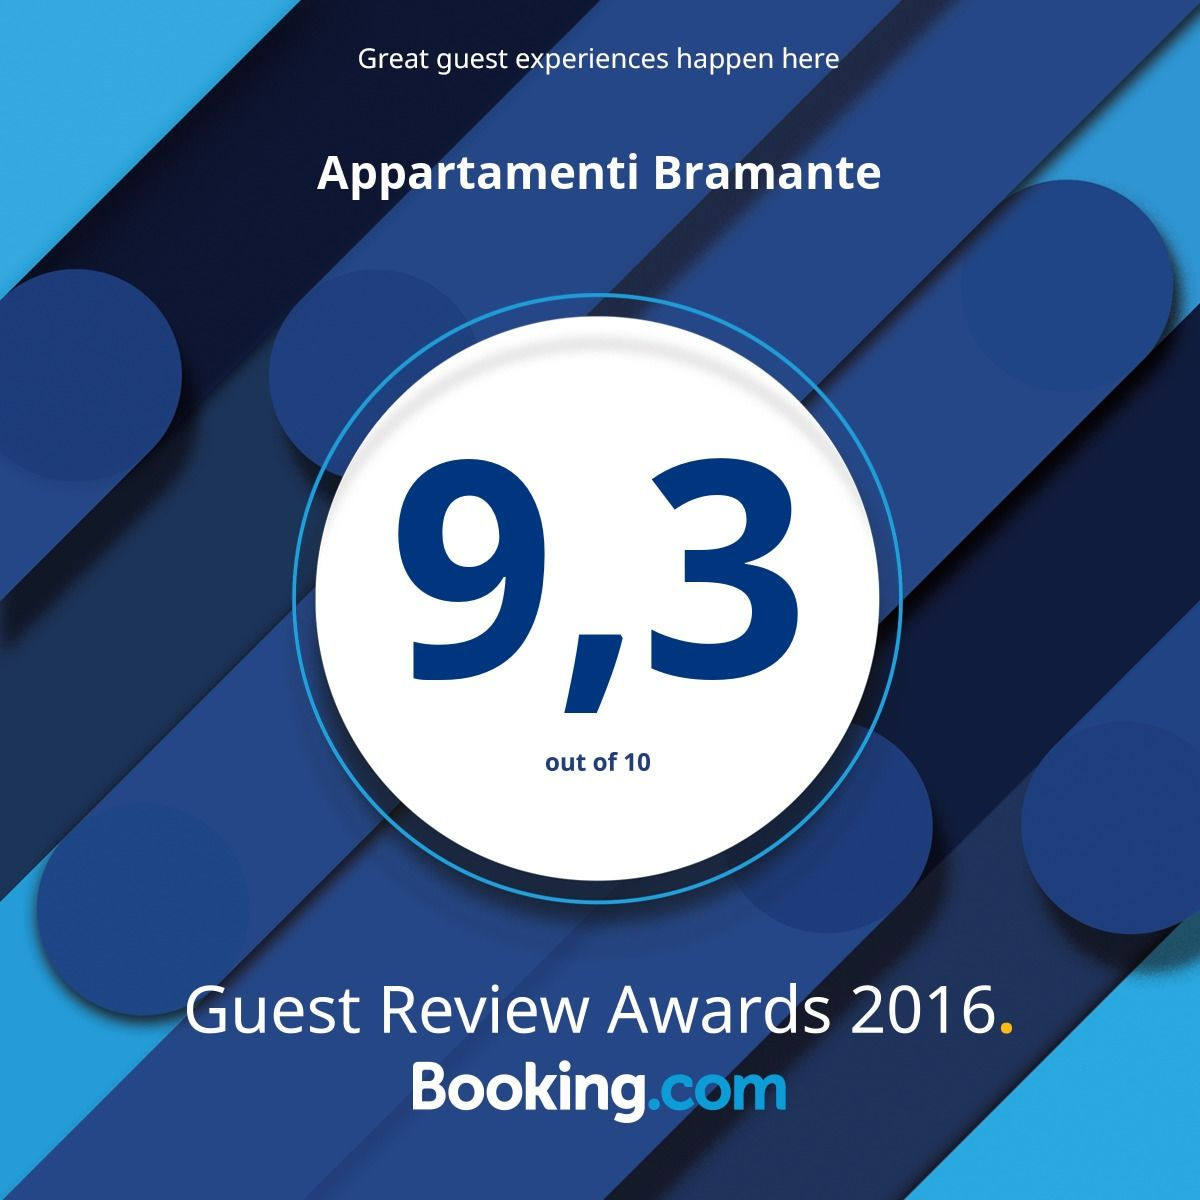 Appartamenti Bramante Vieste - Booking 2016